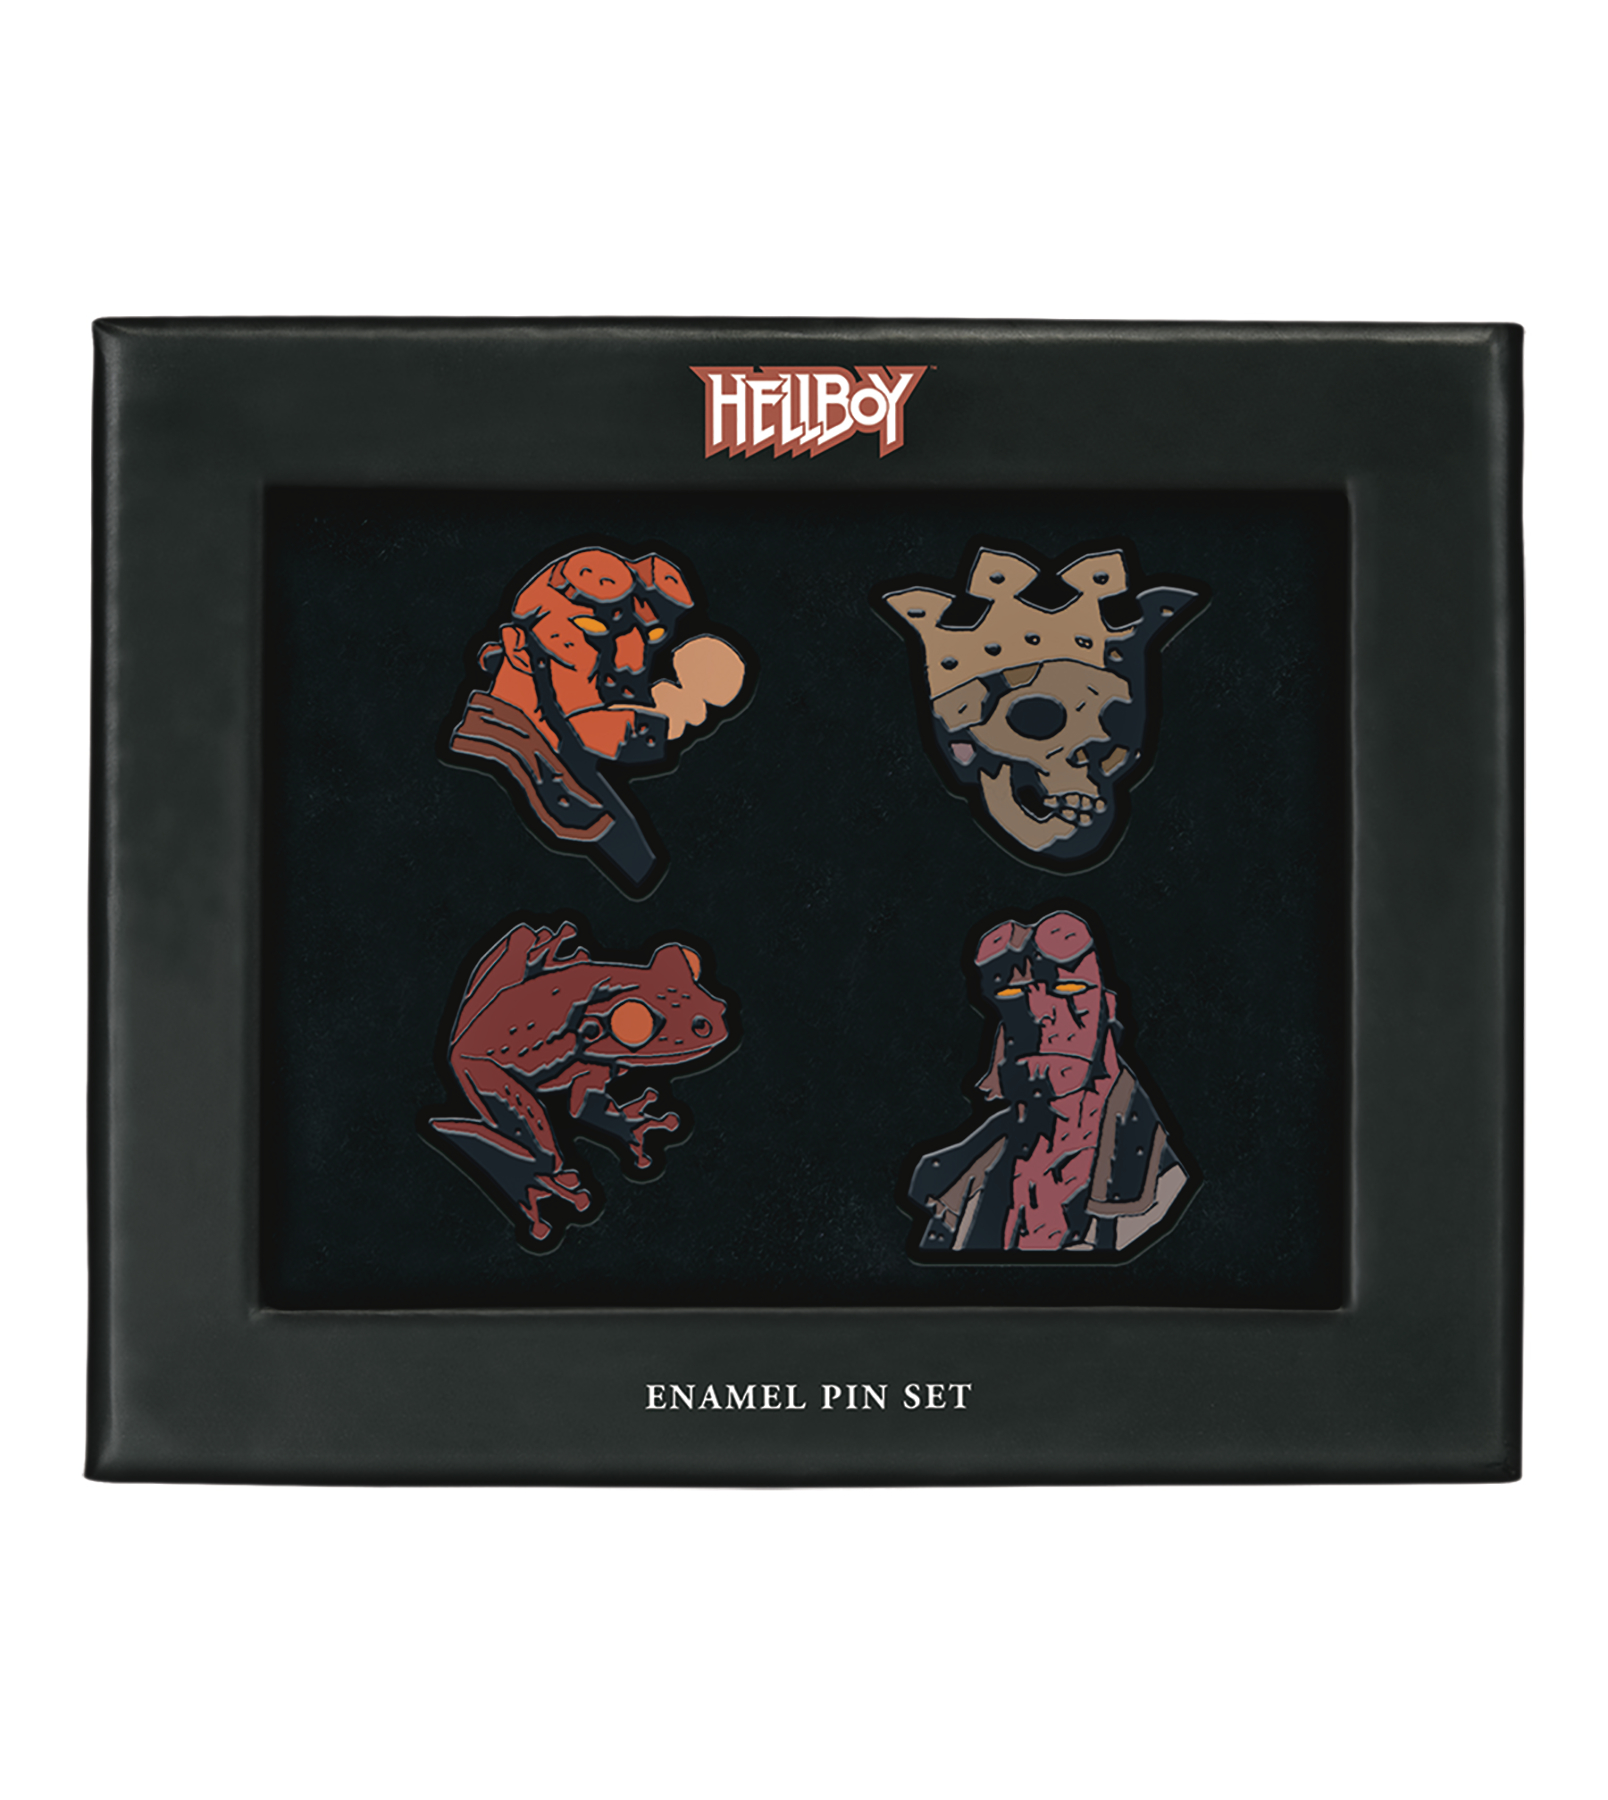 HELLBOY ENAMEL PIN SET